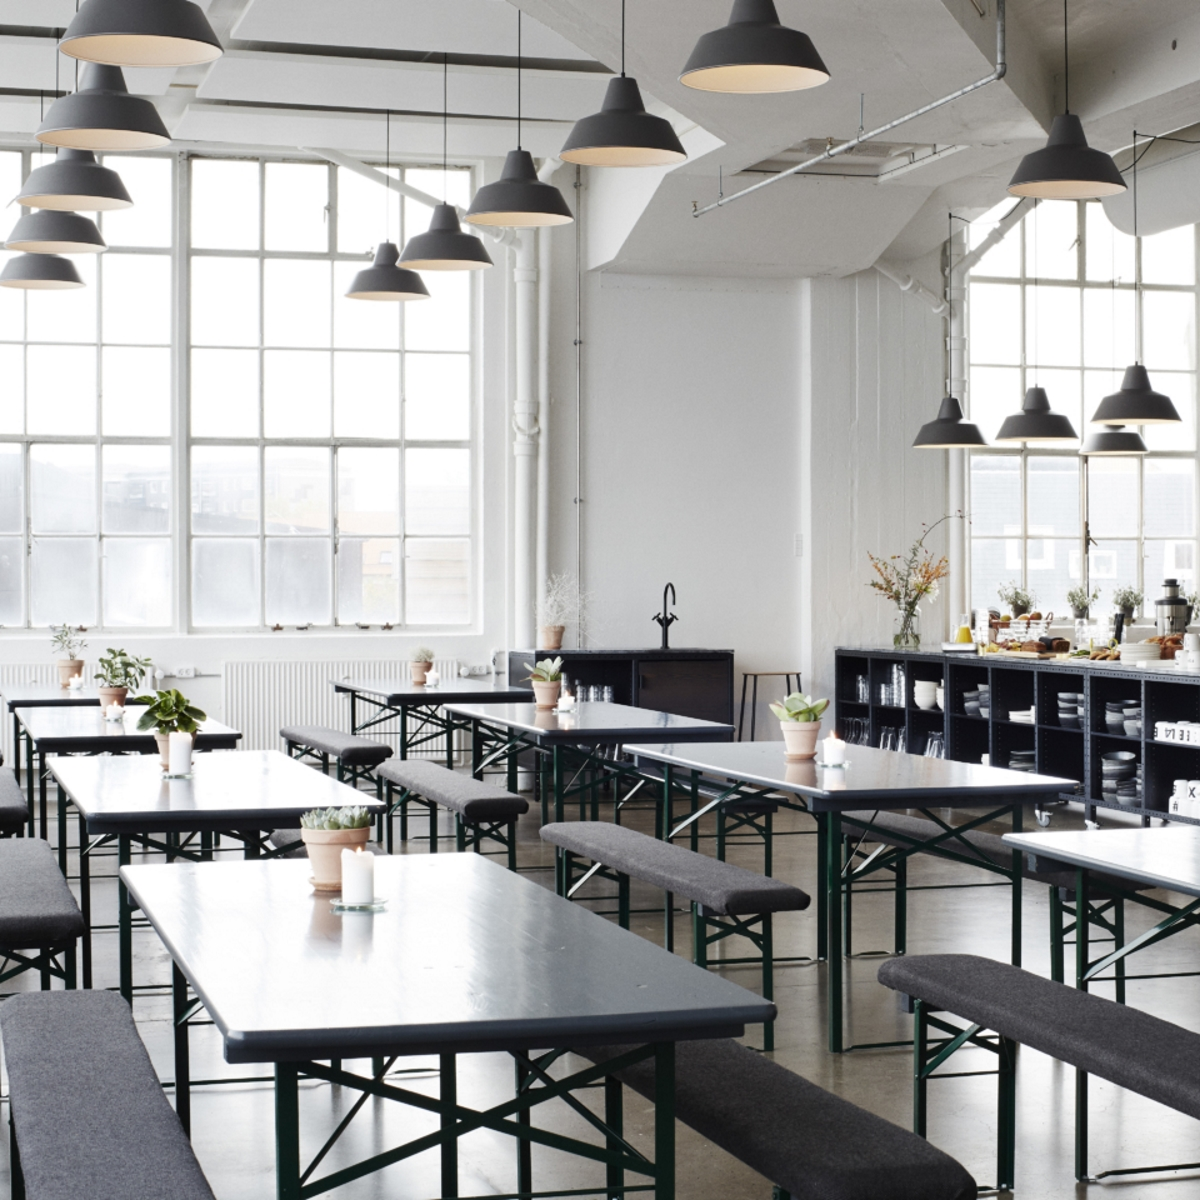 The Lab Kitchen_Café und Restaurant im Industrieloft in Kopenhagen